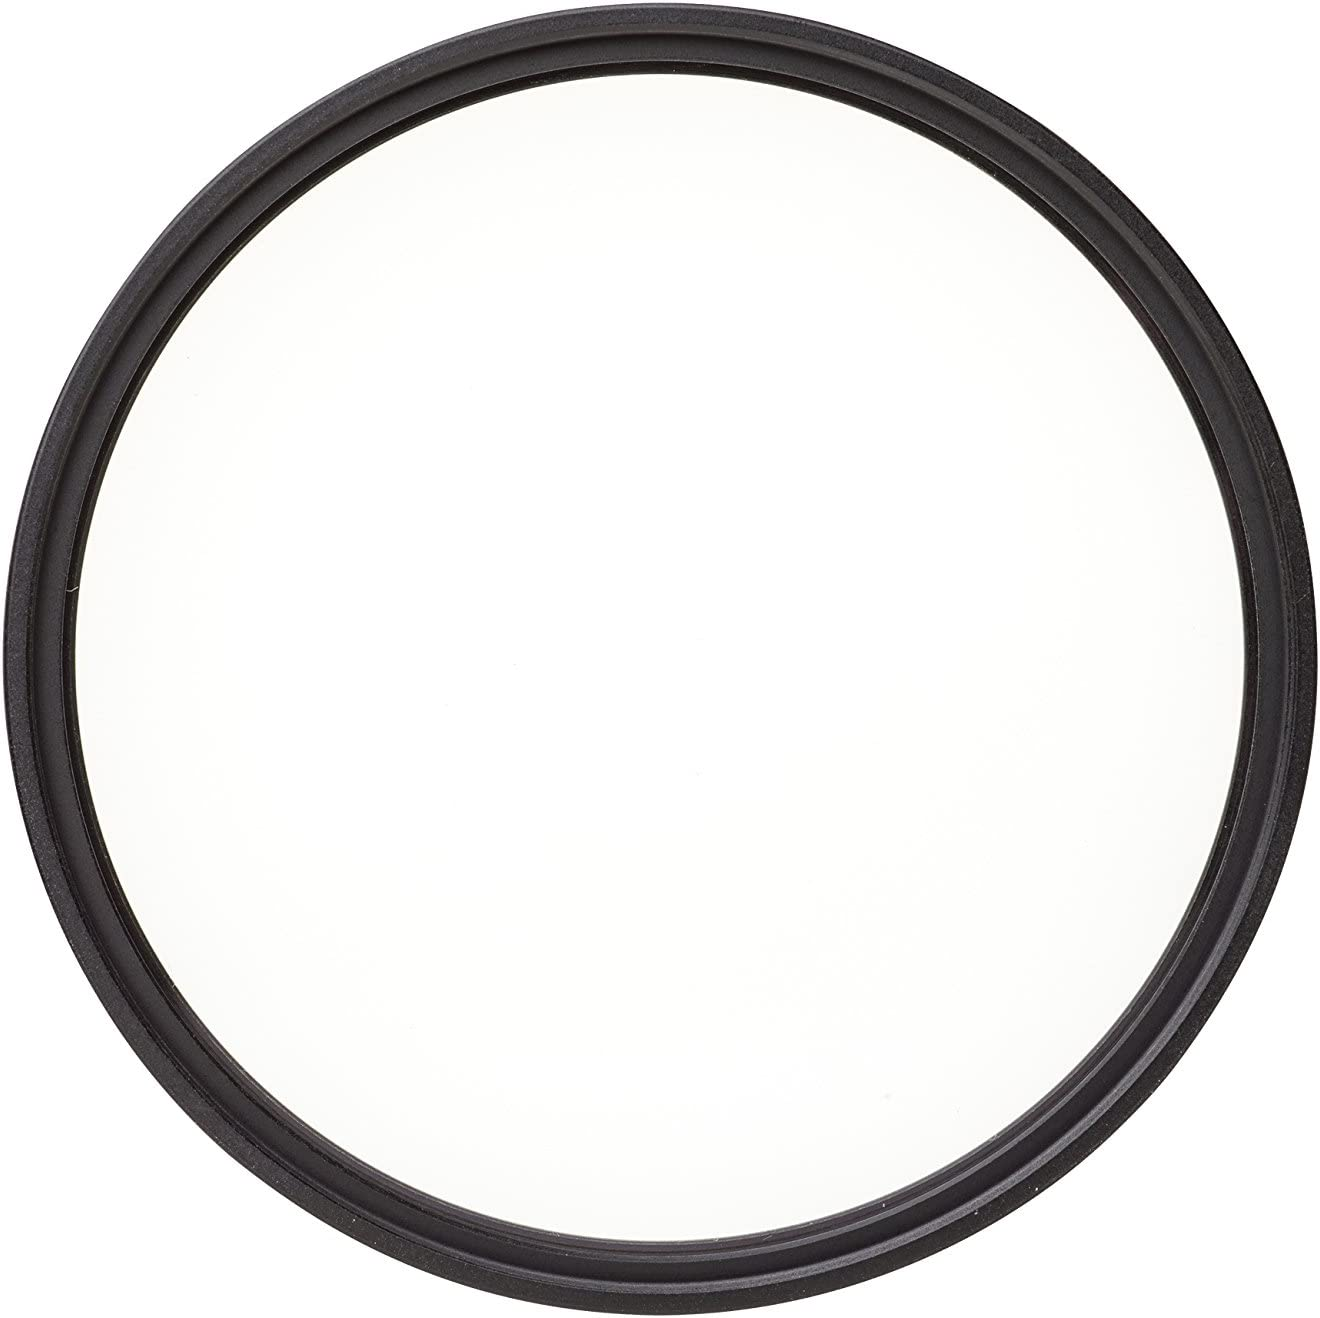 Heliopan 67mm UV SH-PMC Filter (706711) with Specialty Schott Glass in Floating Brass Ring